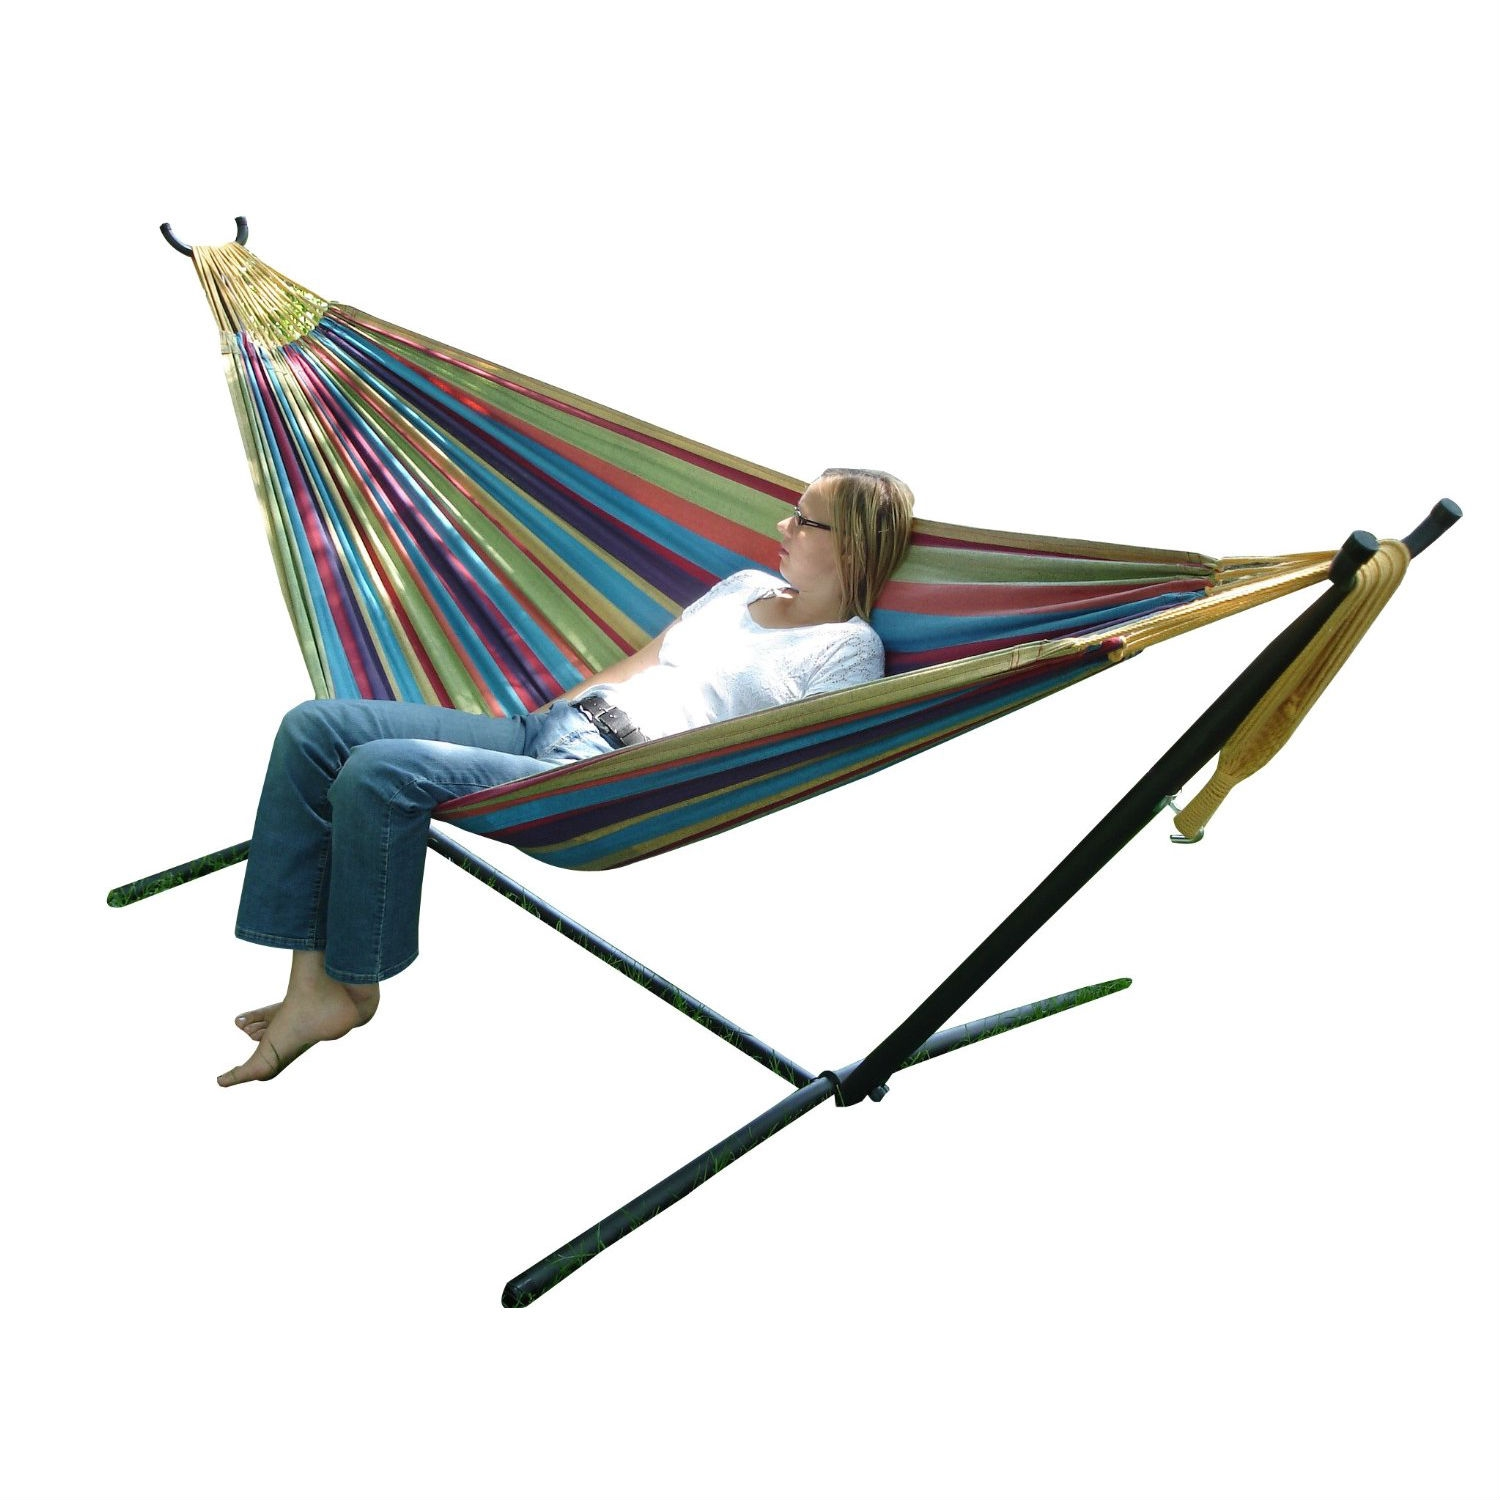 guide hammock patterns cool diy ideas stand up portable